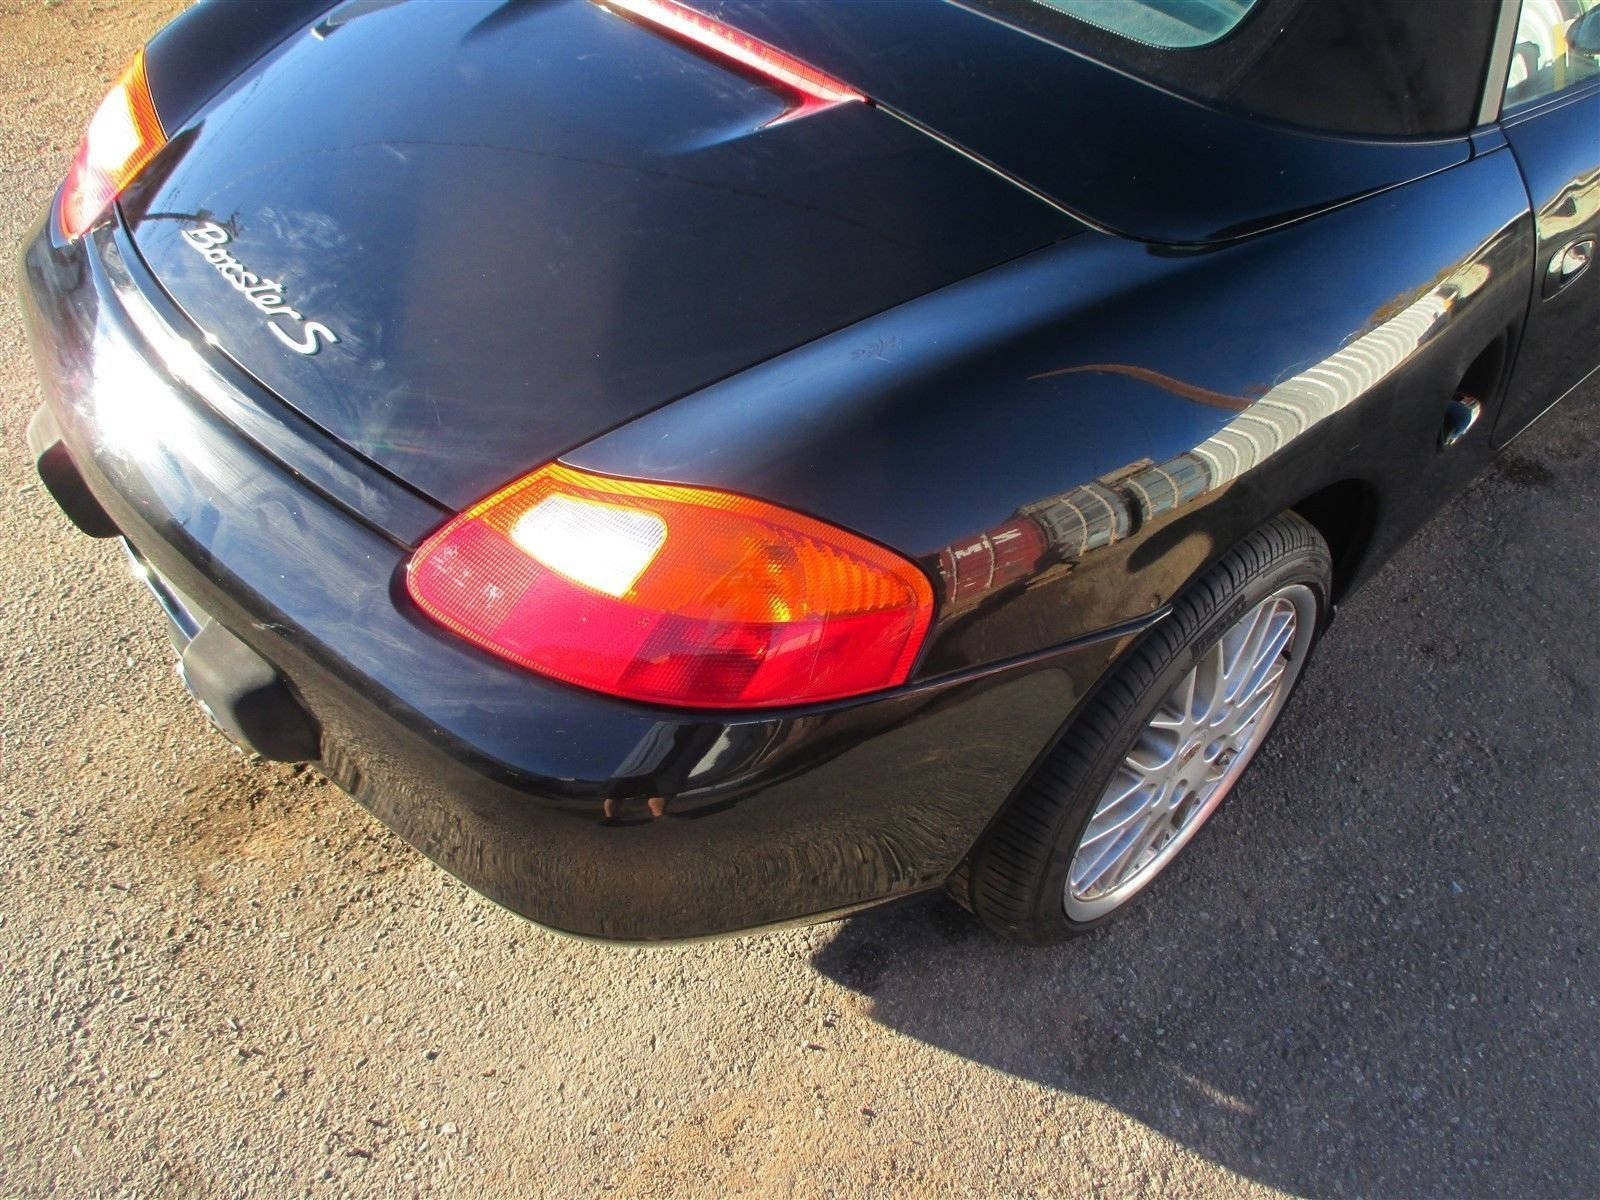 00 Boxster S RWD Porsche 986 Parting Out parts car 36,790